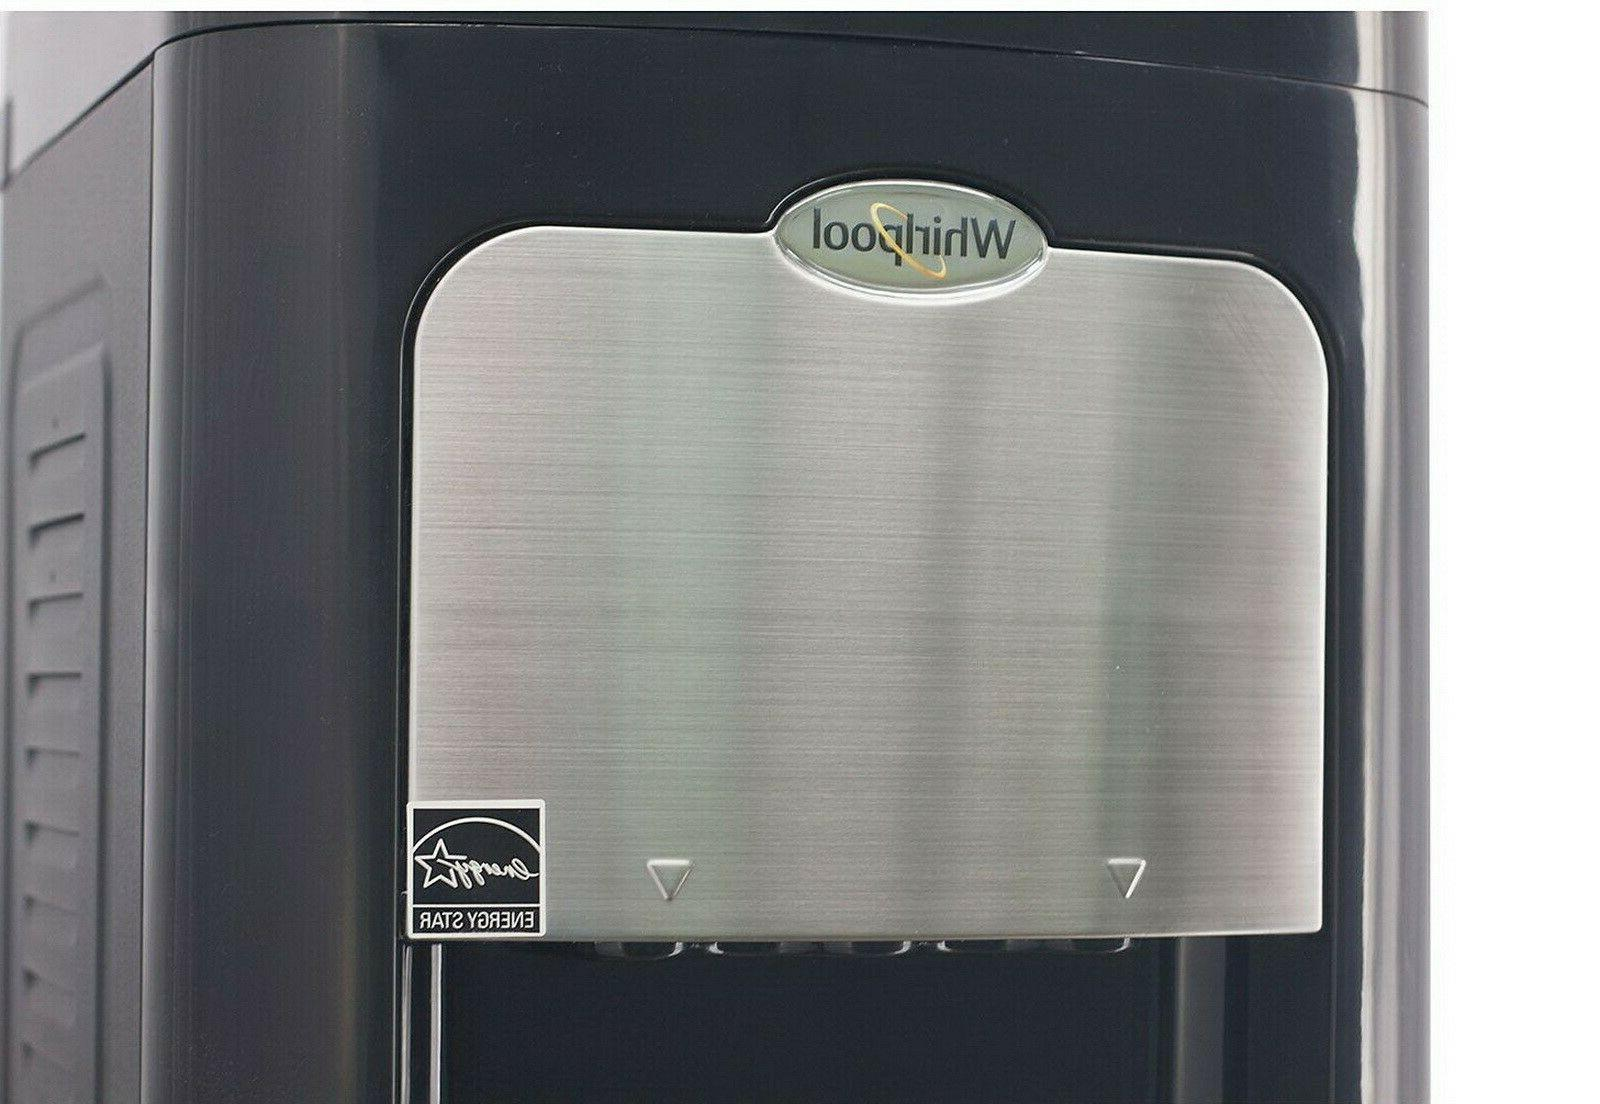 Whirlpool 5 Water Dispenser Cooler Cold Hot Electric Steel Frame